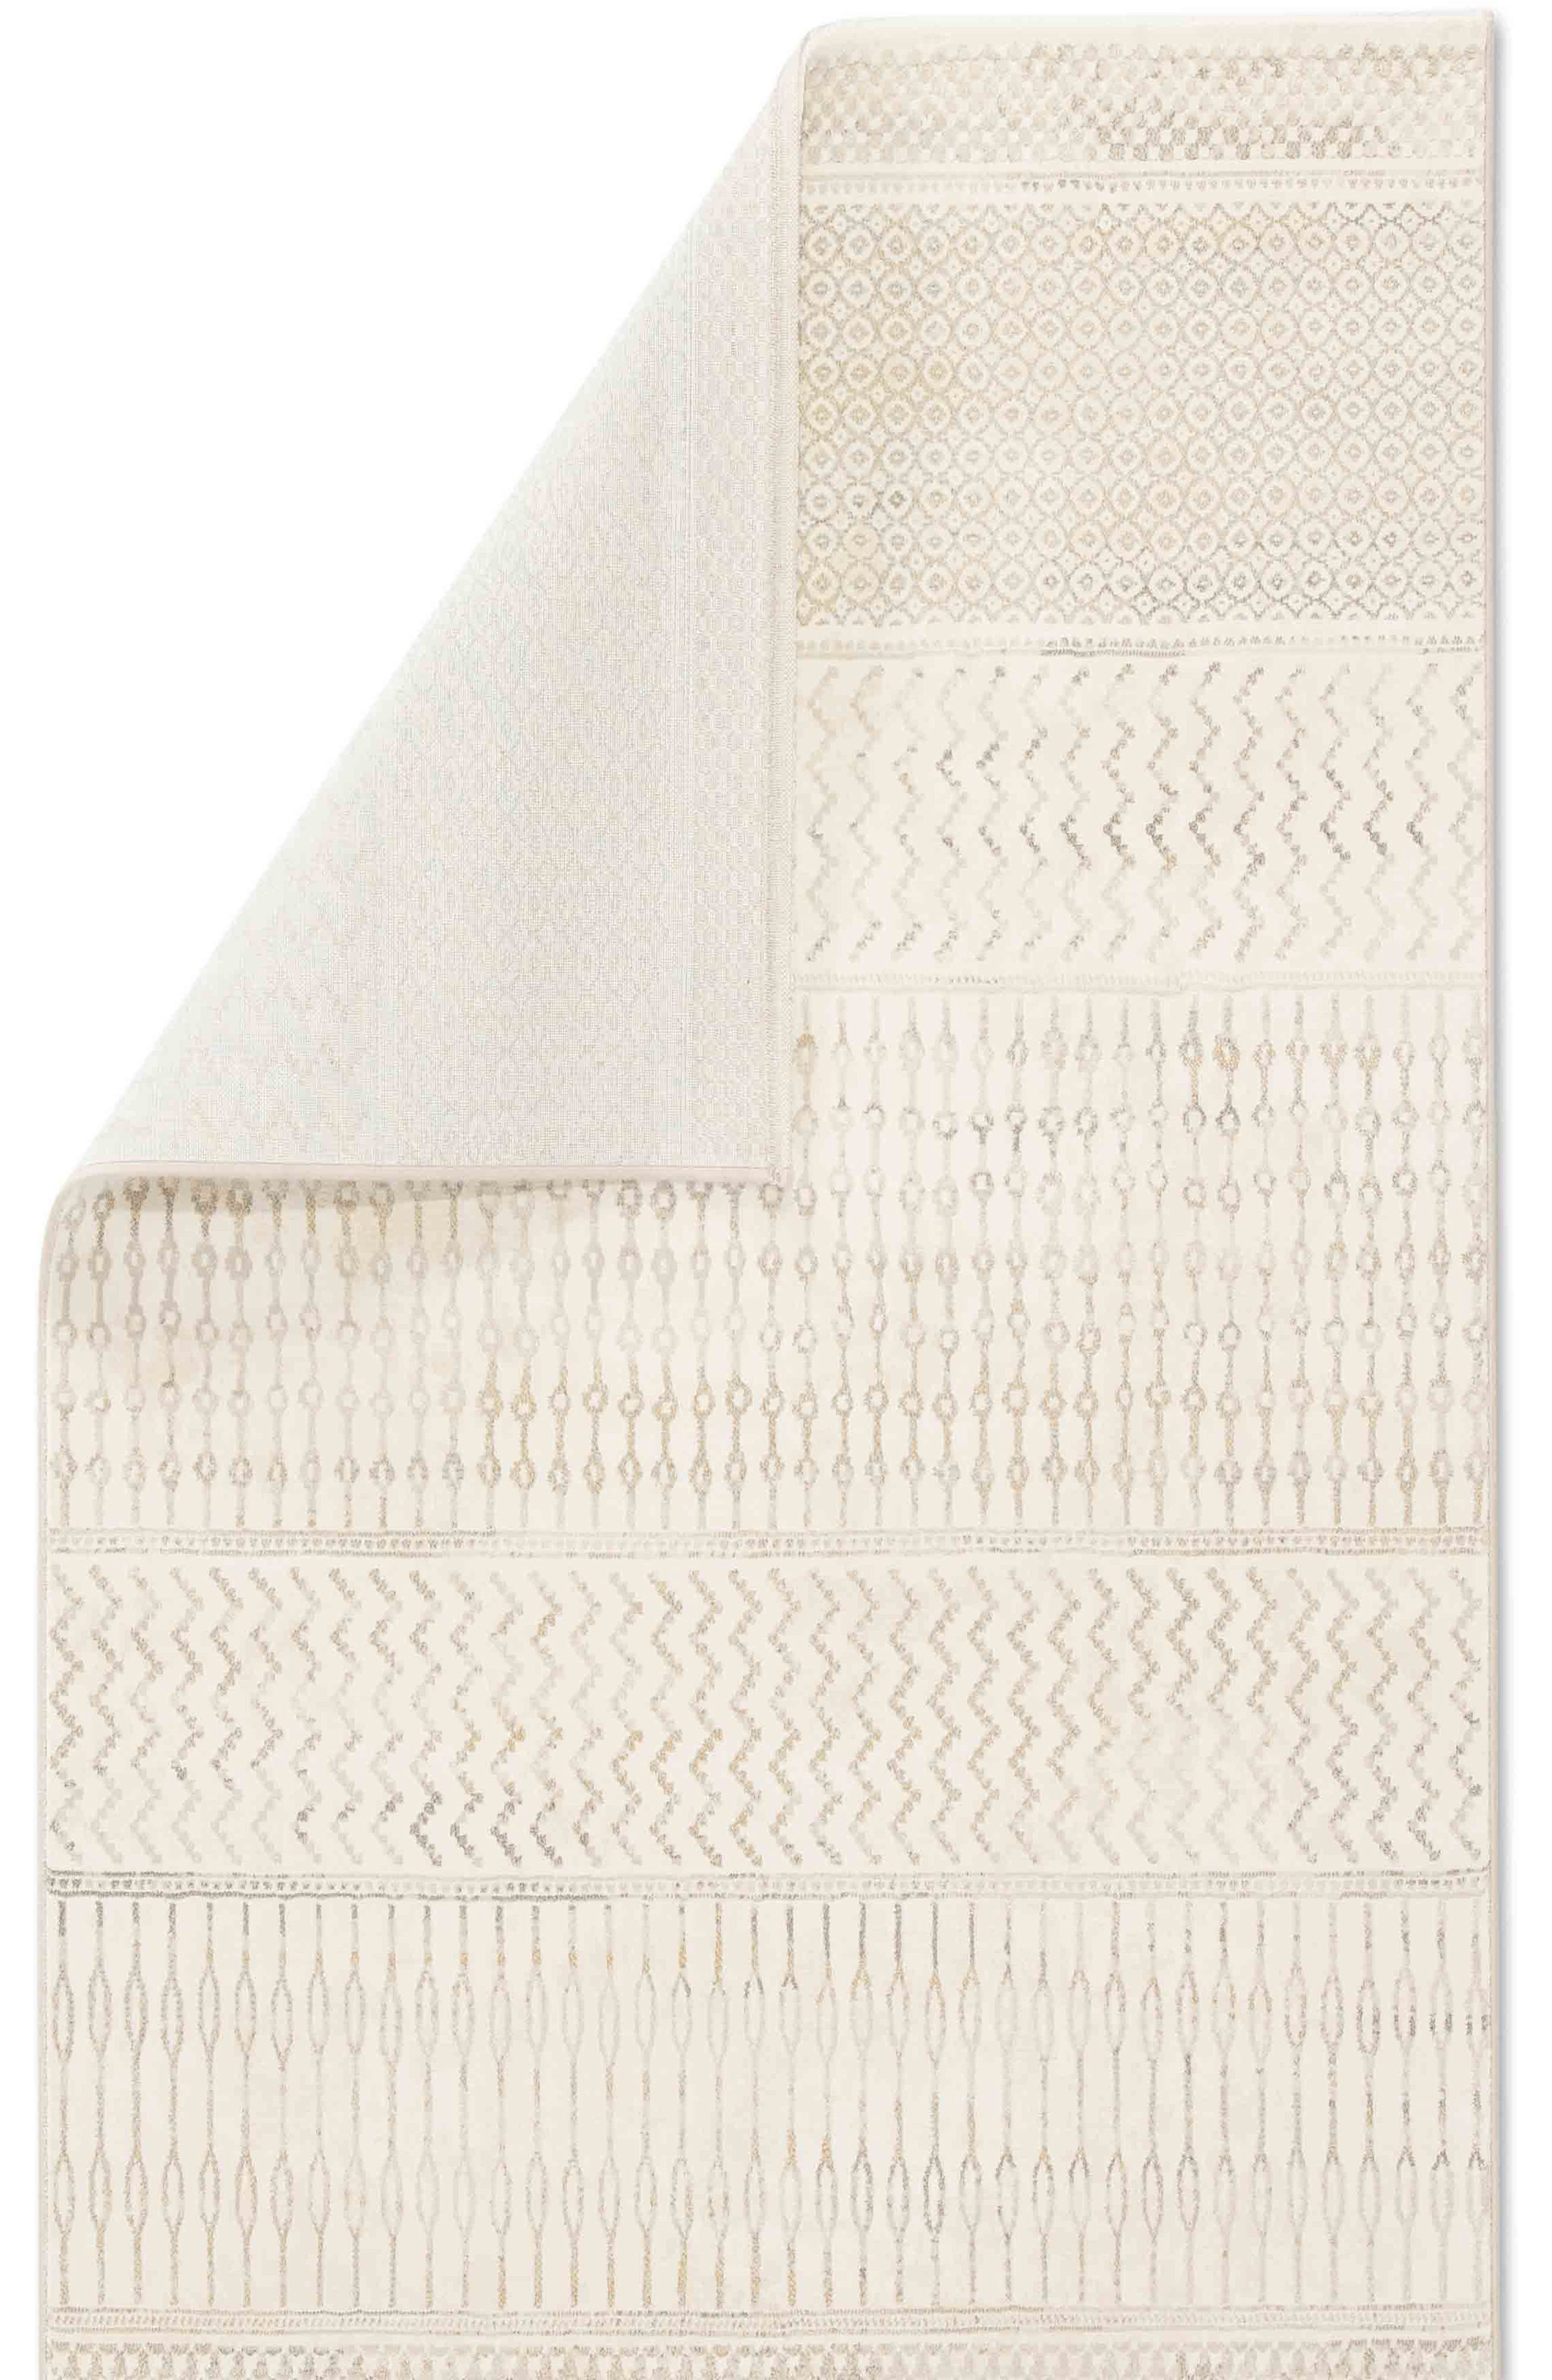 Contemporary Loft Rug,                             Alternate thumbnail 3, color,                             CREAM TAN